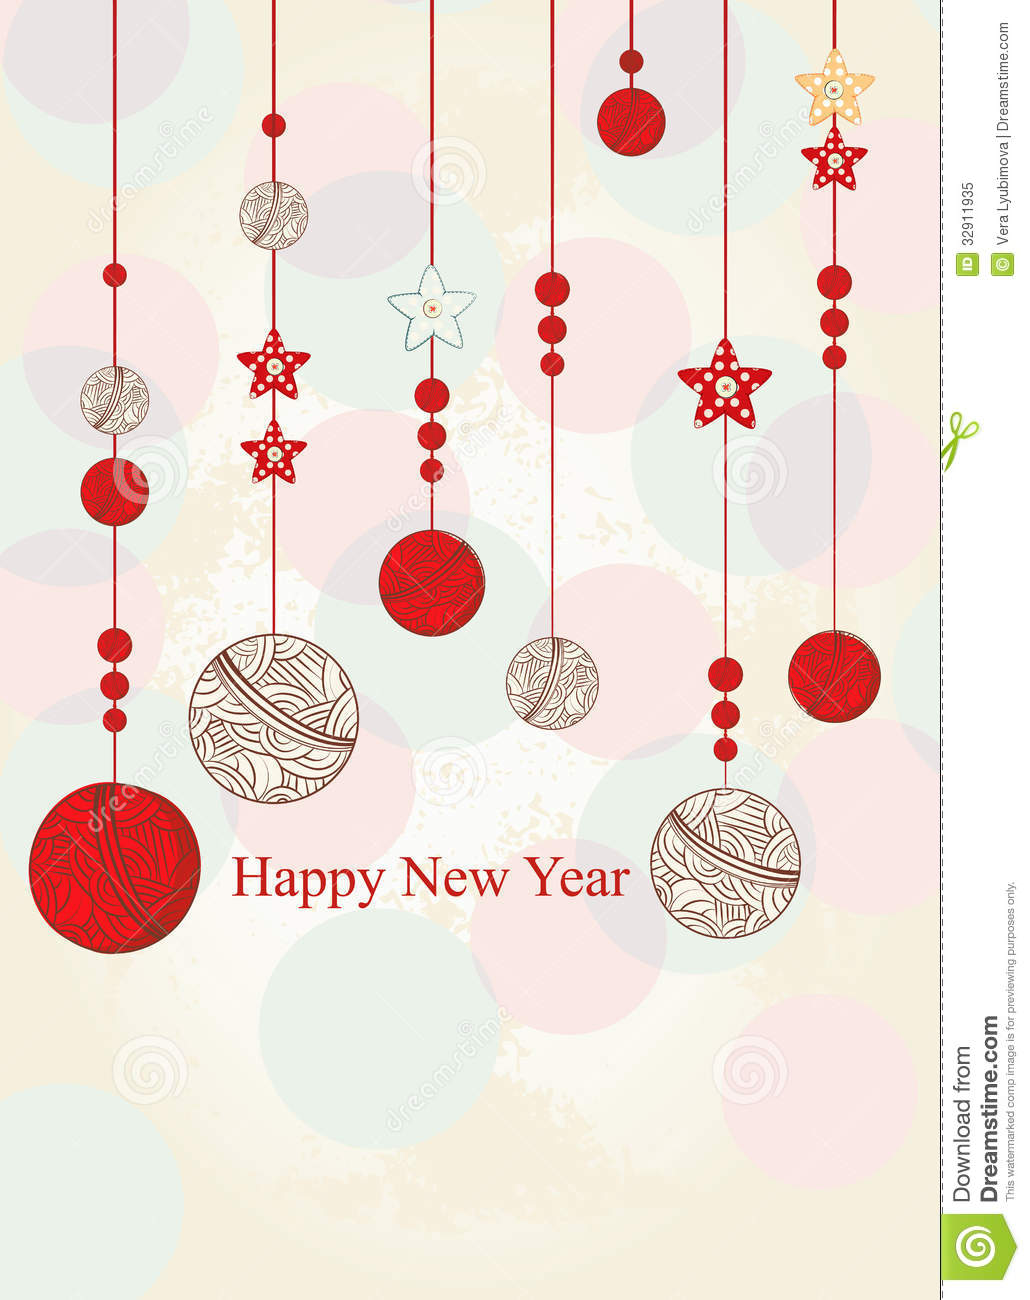 New year season greetings messages images greetings card design simple christmas new year card pictures all ideas about christmas and m4hsunfo